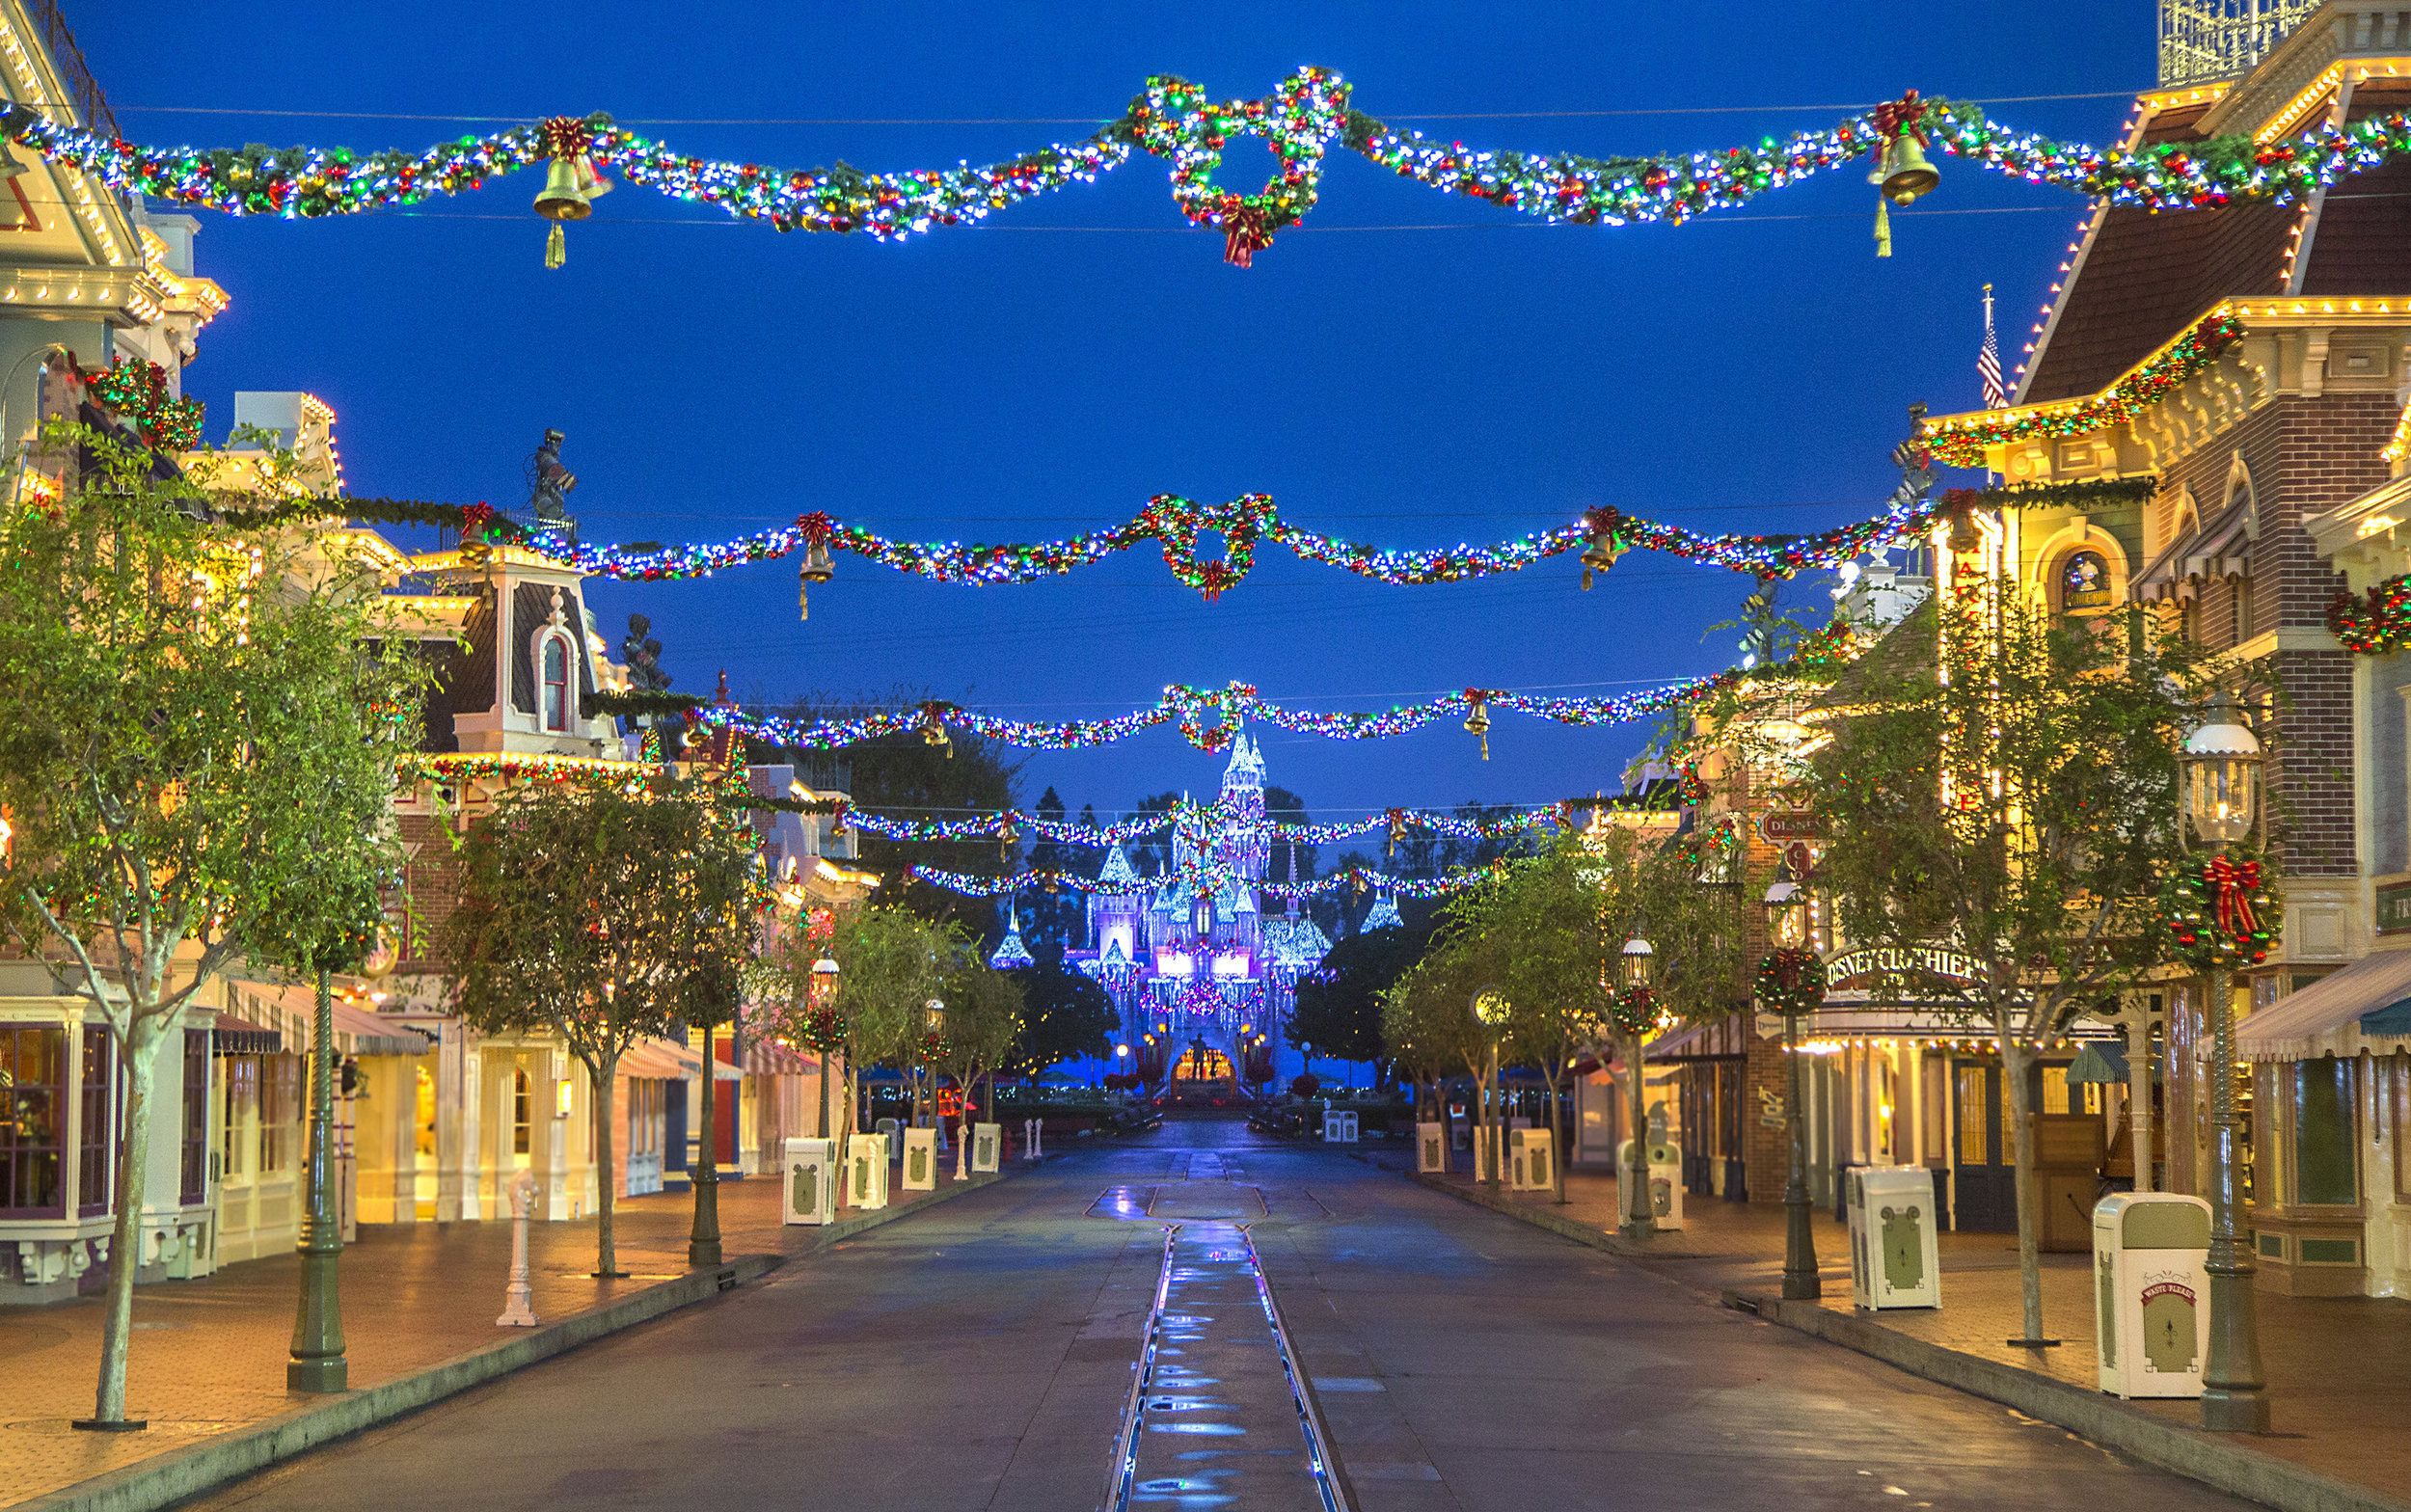 Image © Paul Hiffmeyer/  Disneyland Resort